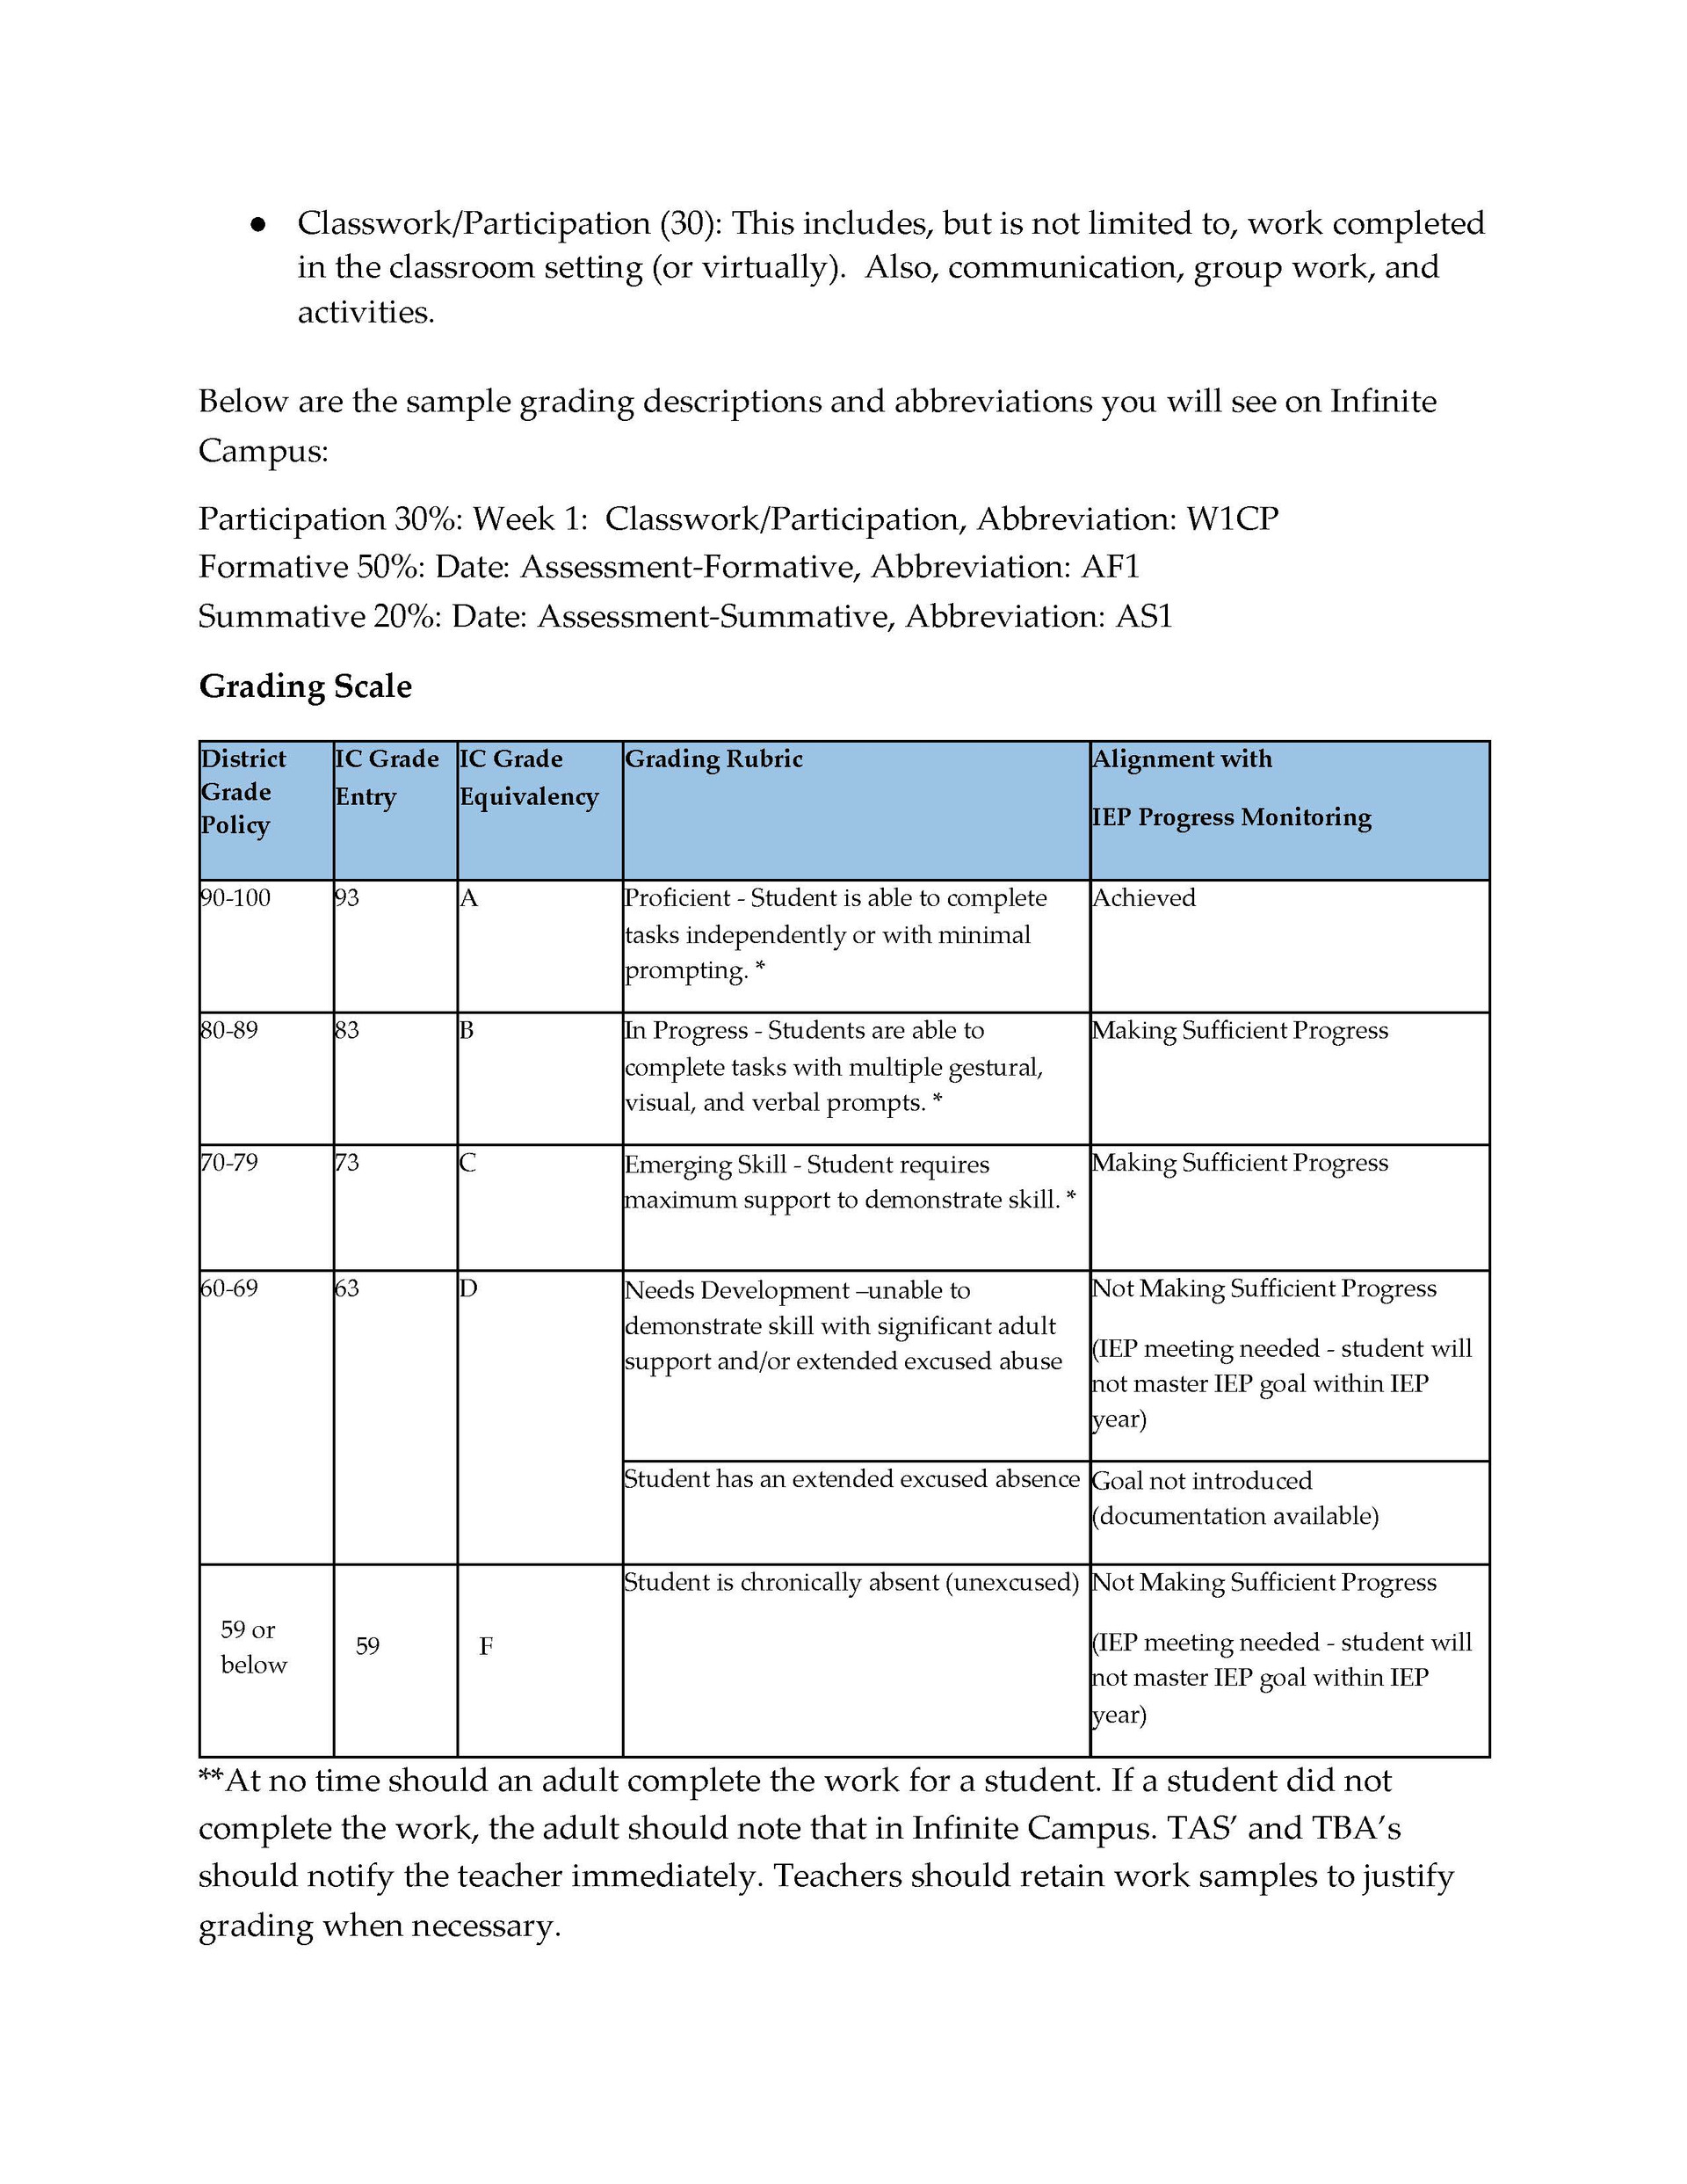 SY 20-21 Baer Grading Policy_Page_4.jpg